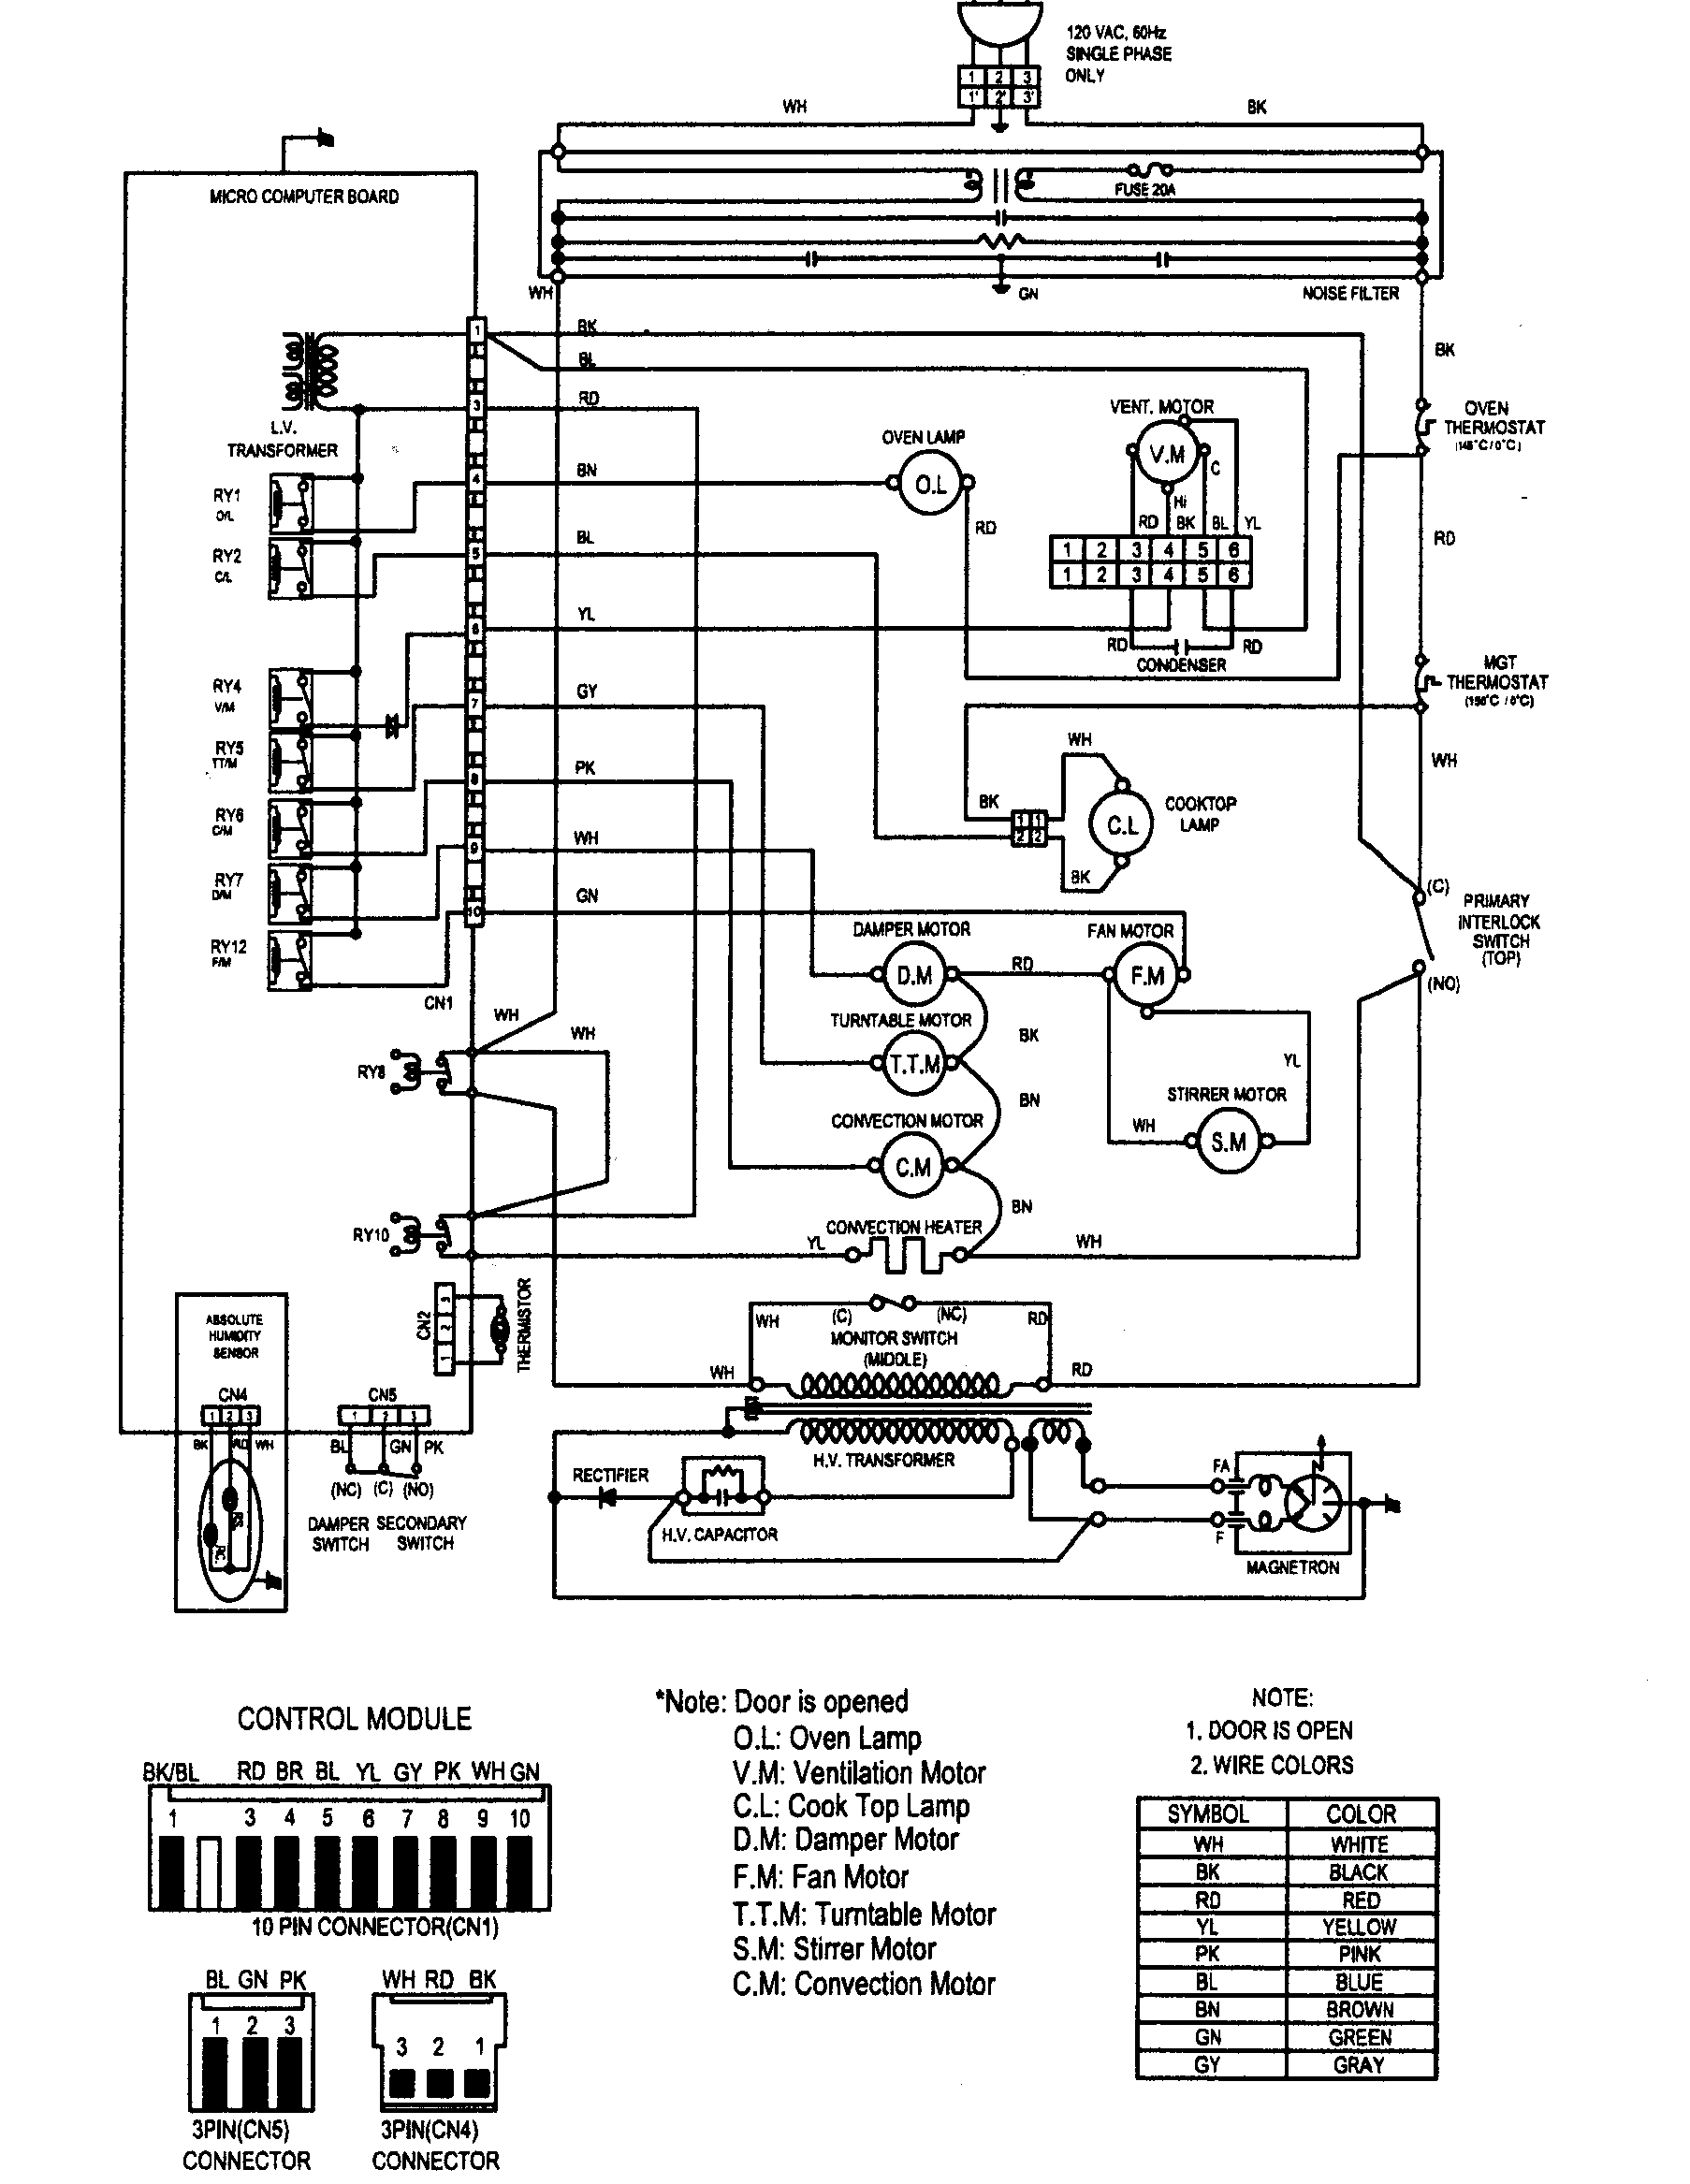 Wiring Diagram For Kenmore Elite Dryer - Wiring Diagram Mega on kenmore 110 dryer wiring, ge washer wiring schematic, gas dryer schematic, kenmore 90 series dryer schematic, kenmore model 110 diagram, ge dishwasher wiring schematic, kenmore 110 dryer schematic, refrigerator wiring schematic, whirlpool dishwasher wiring schematic, whirlpool dryer electrical schematic, kenmore dryers manuals 110, maytag washer wiring schematic, kenmore dryer heating schematic, kenmore dryer electrical wiring, kenmore elite dryer schematic,